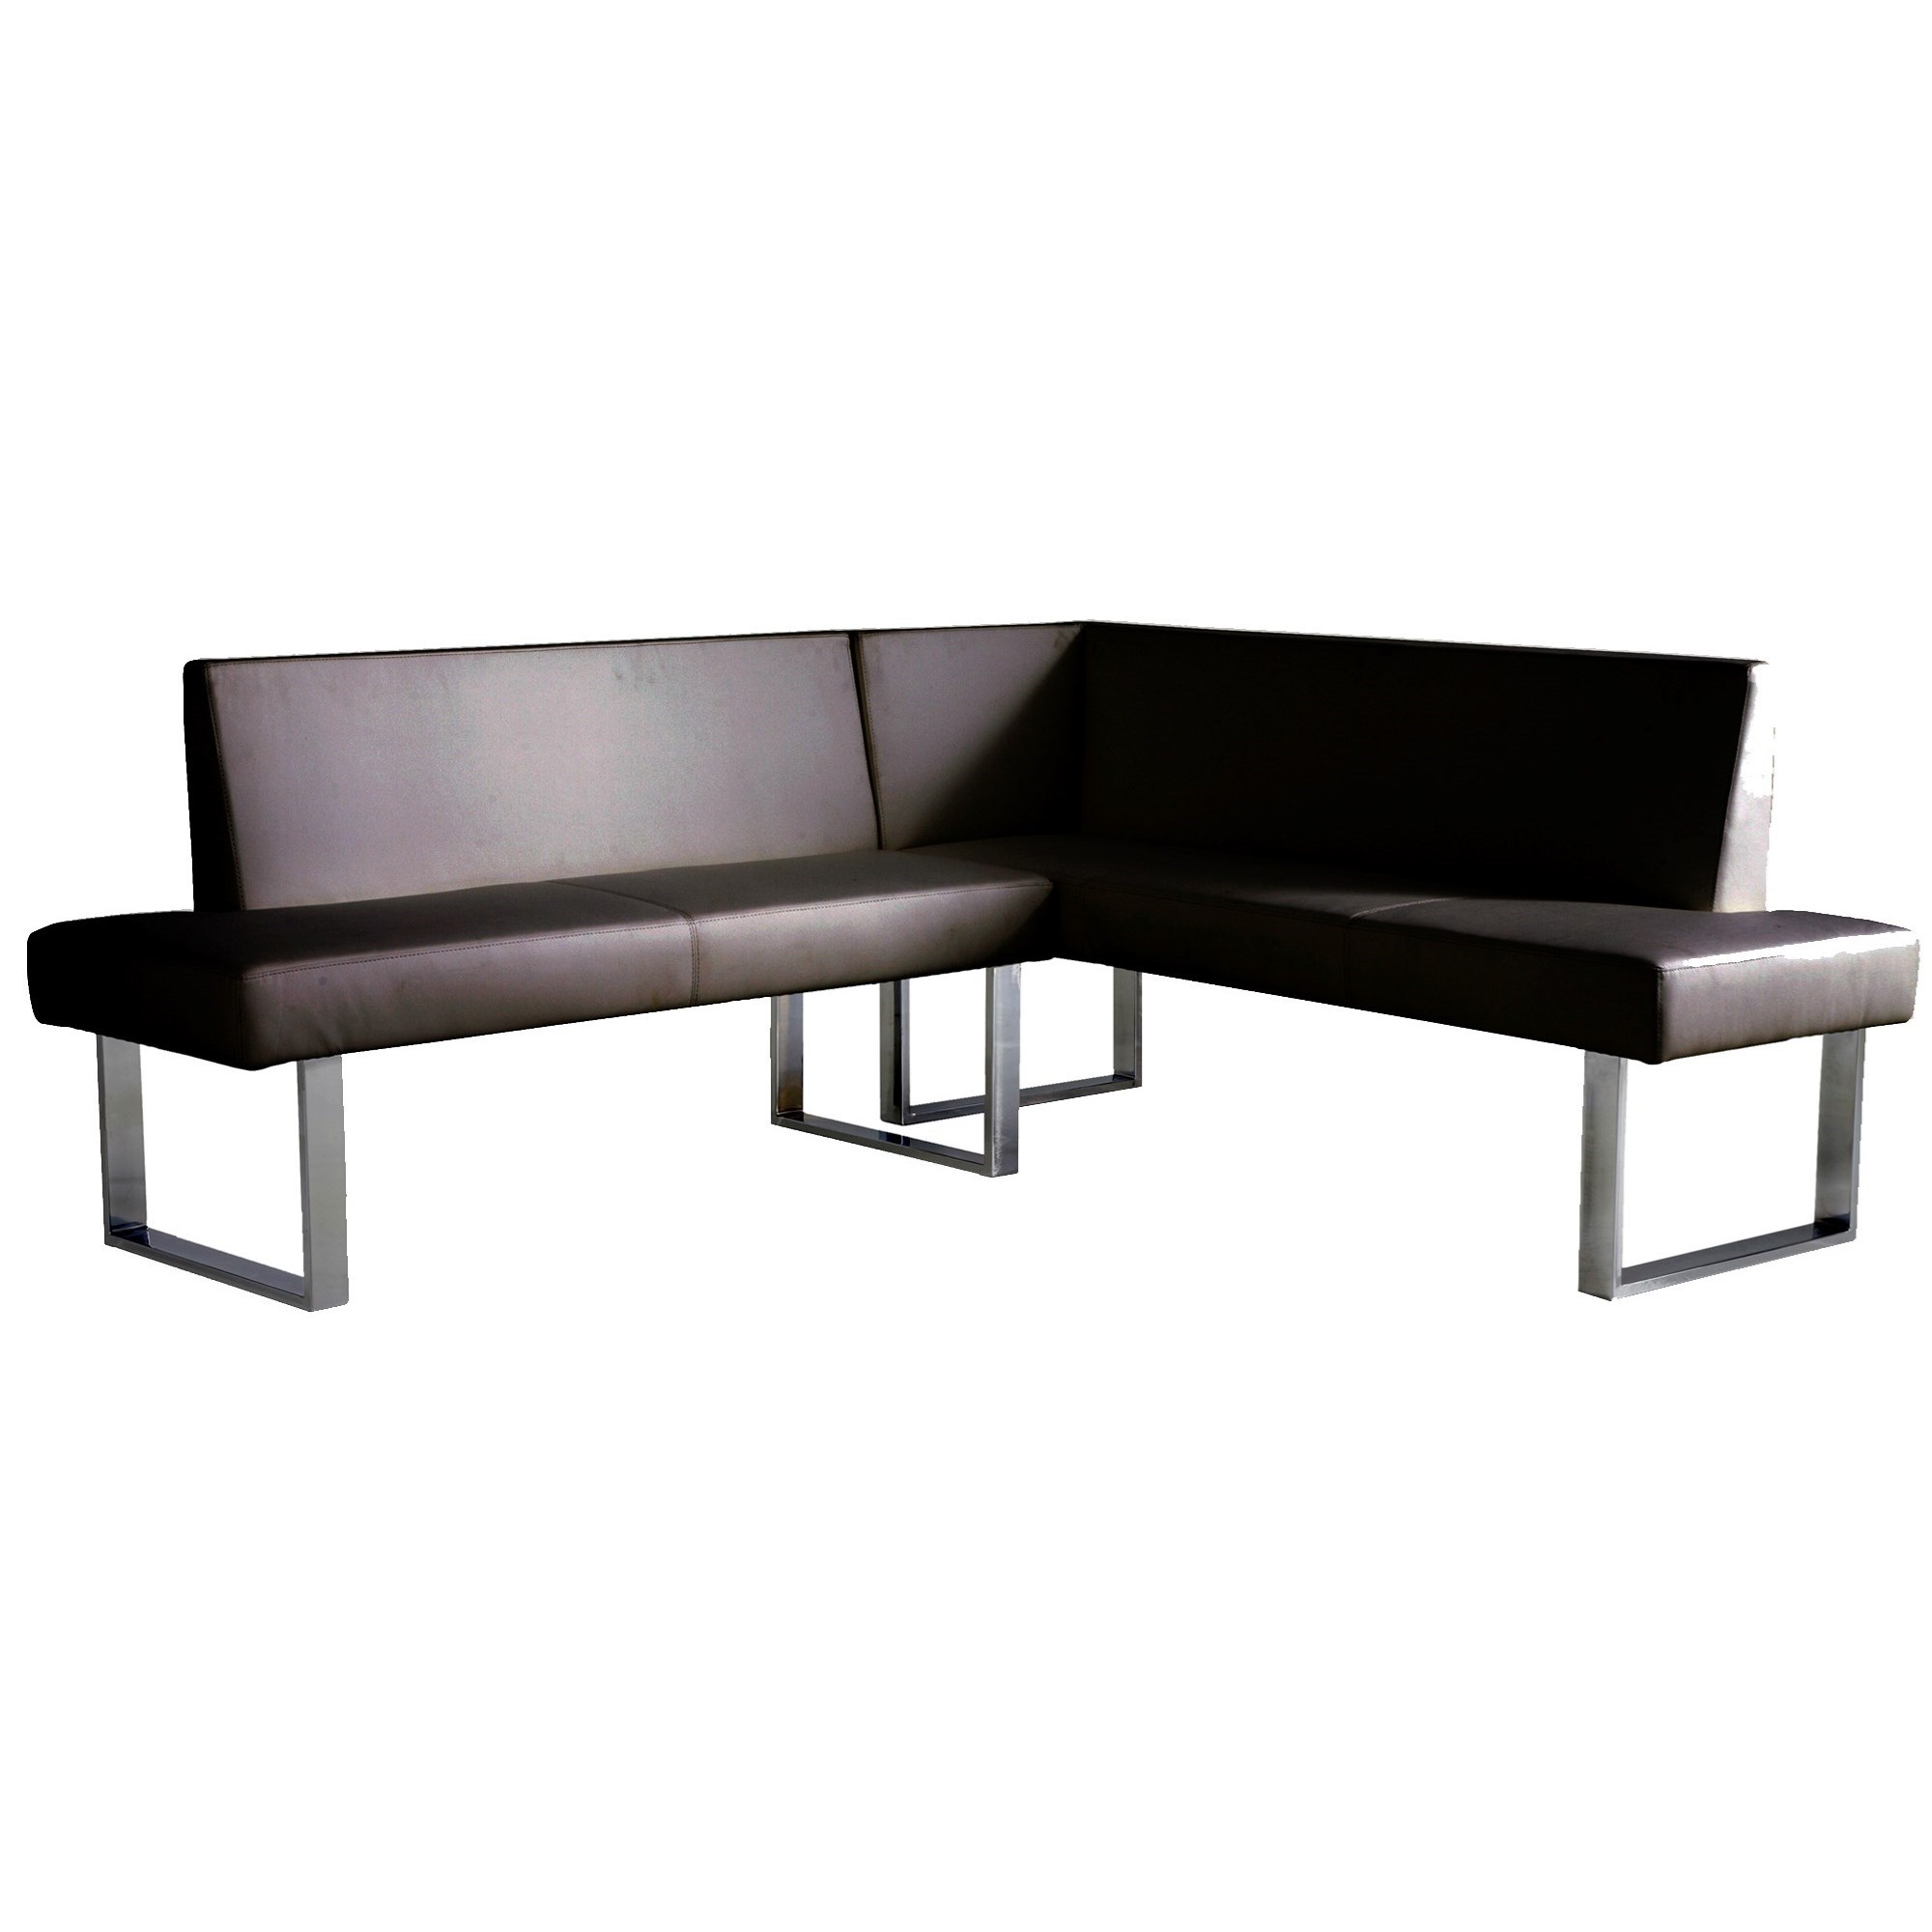 Amanda Nook Corner Dining Bench by Armen Living at Fisher Home Furnishings